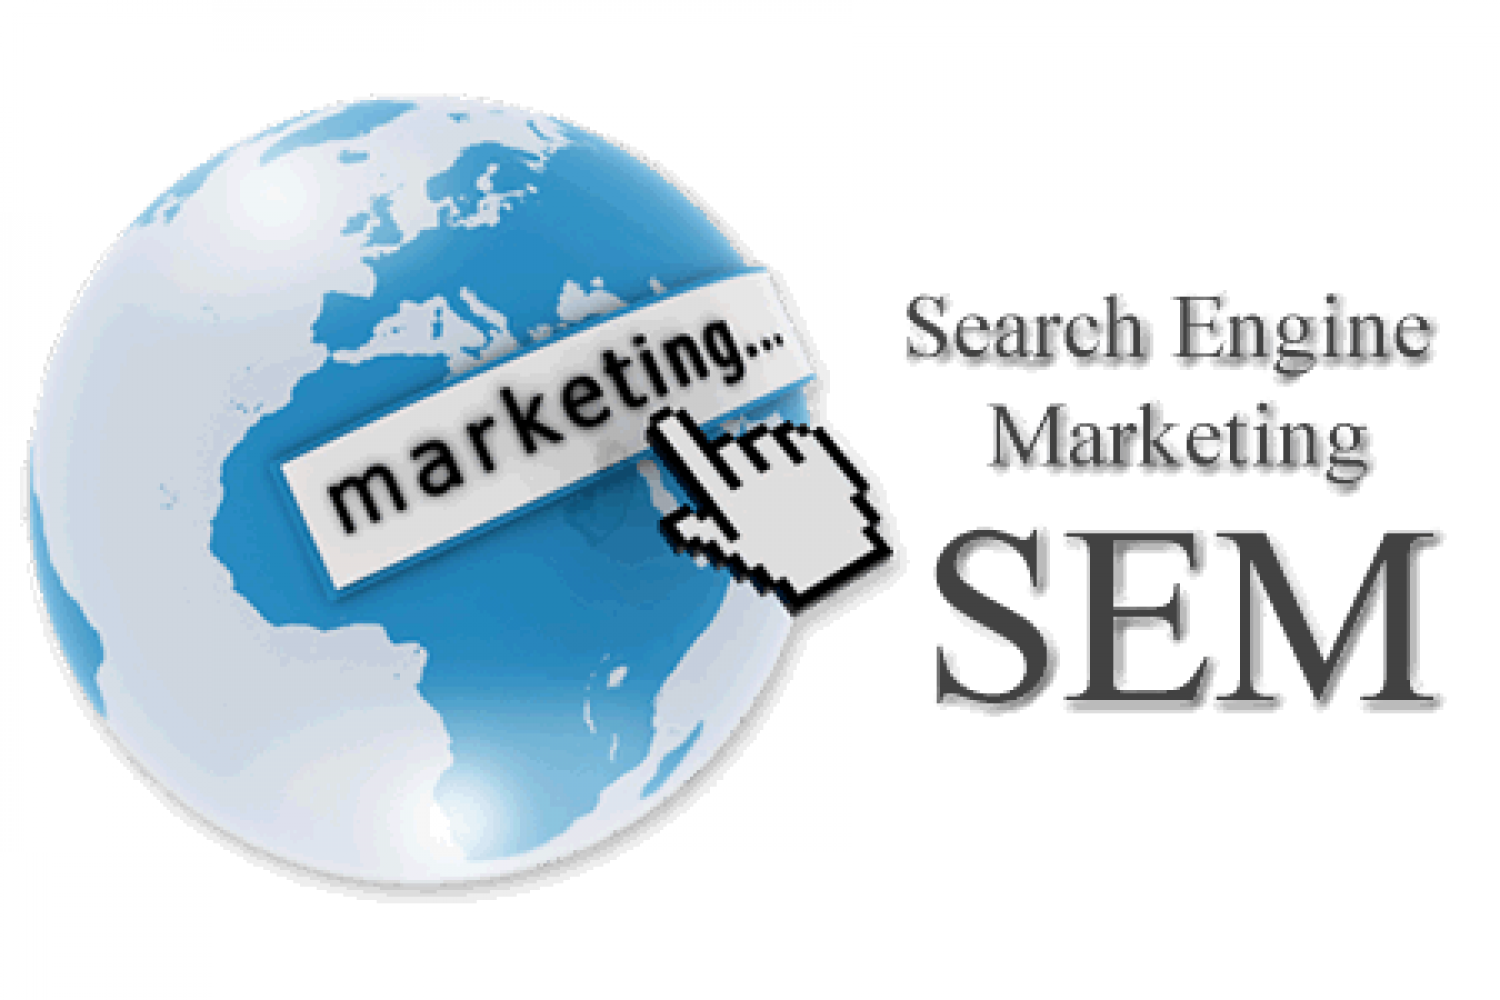 search engine marketing essay The professor only said we have to write about search engine marketing i want you to write al about search engine marketing – what is search engine marketing.